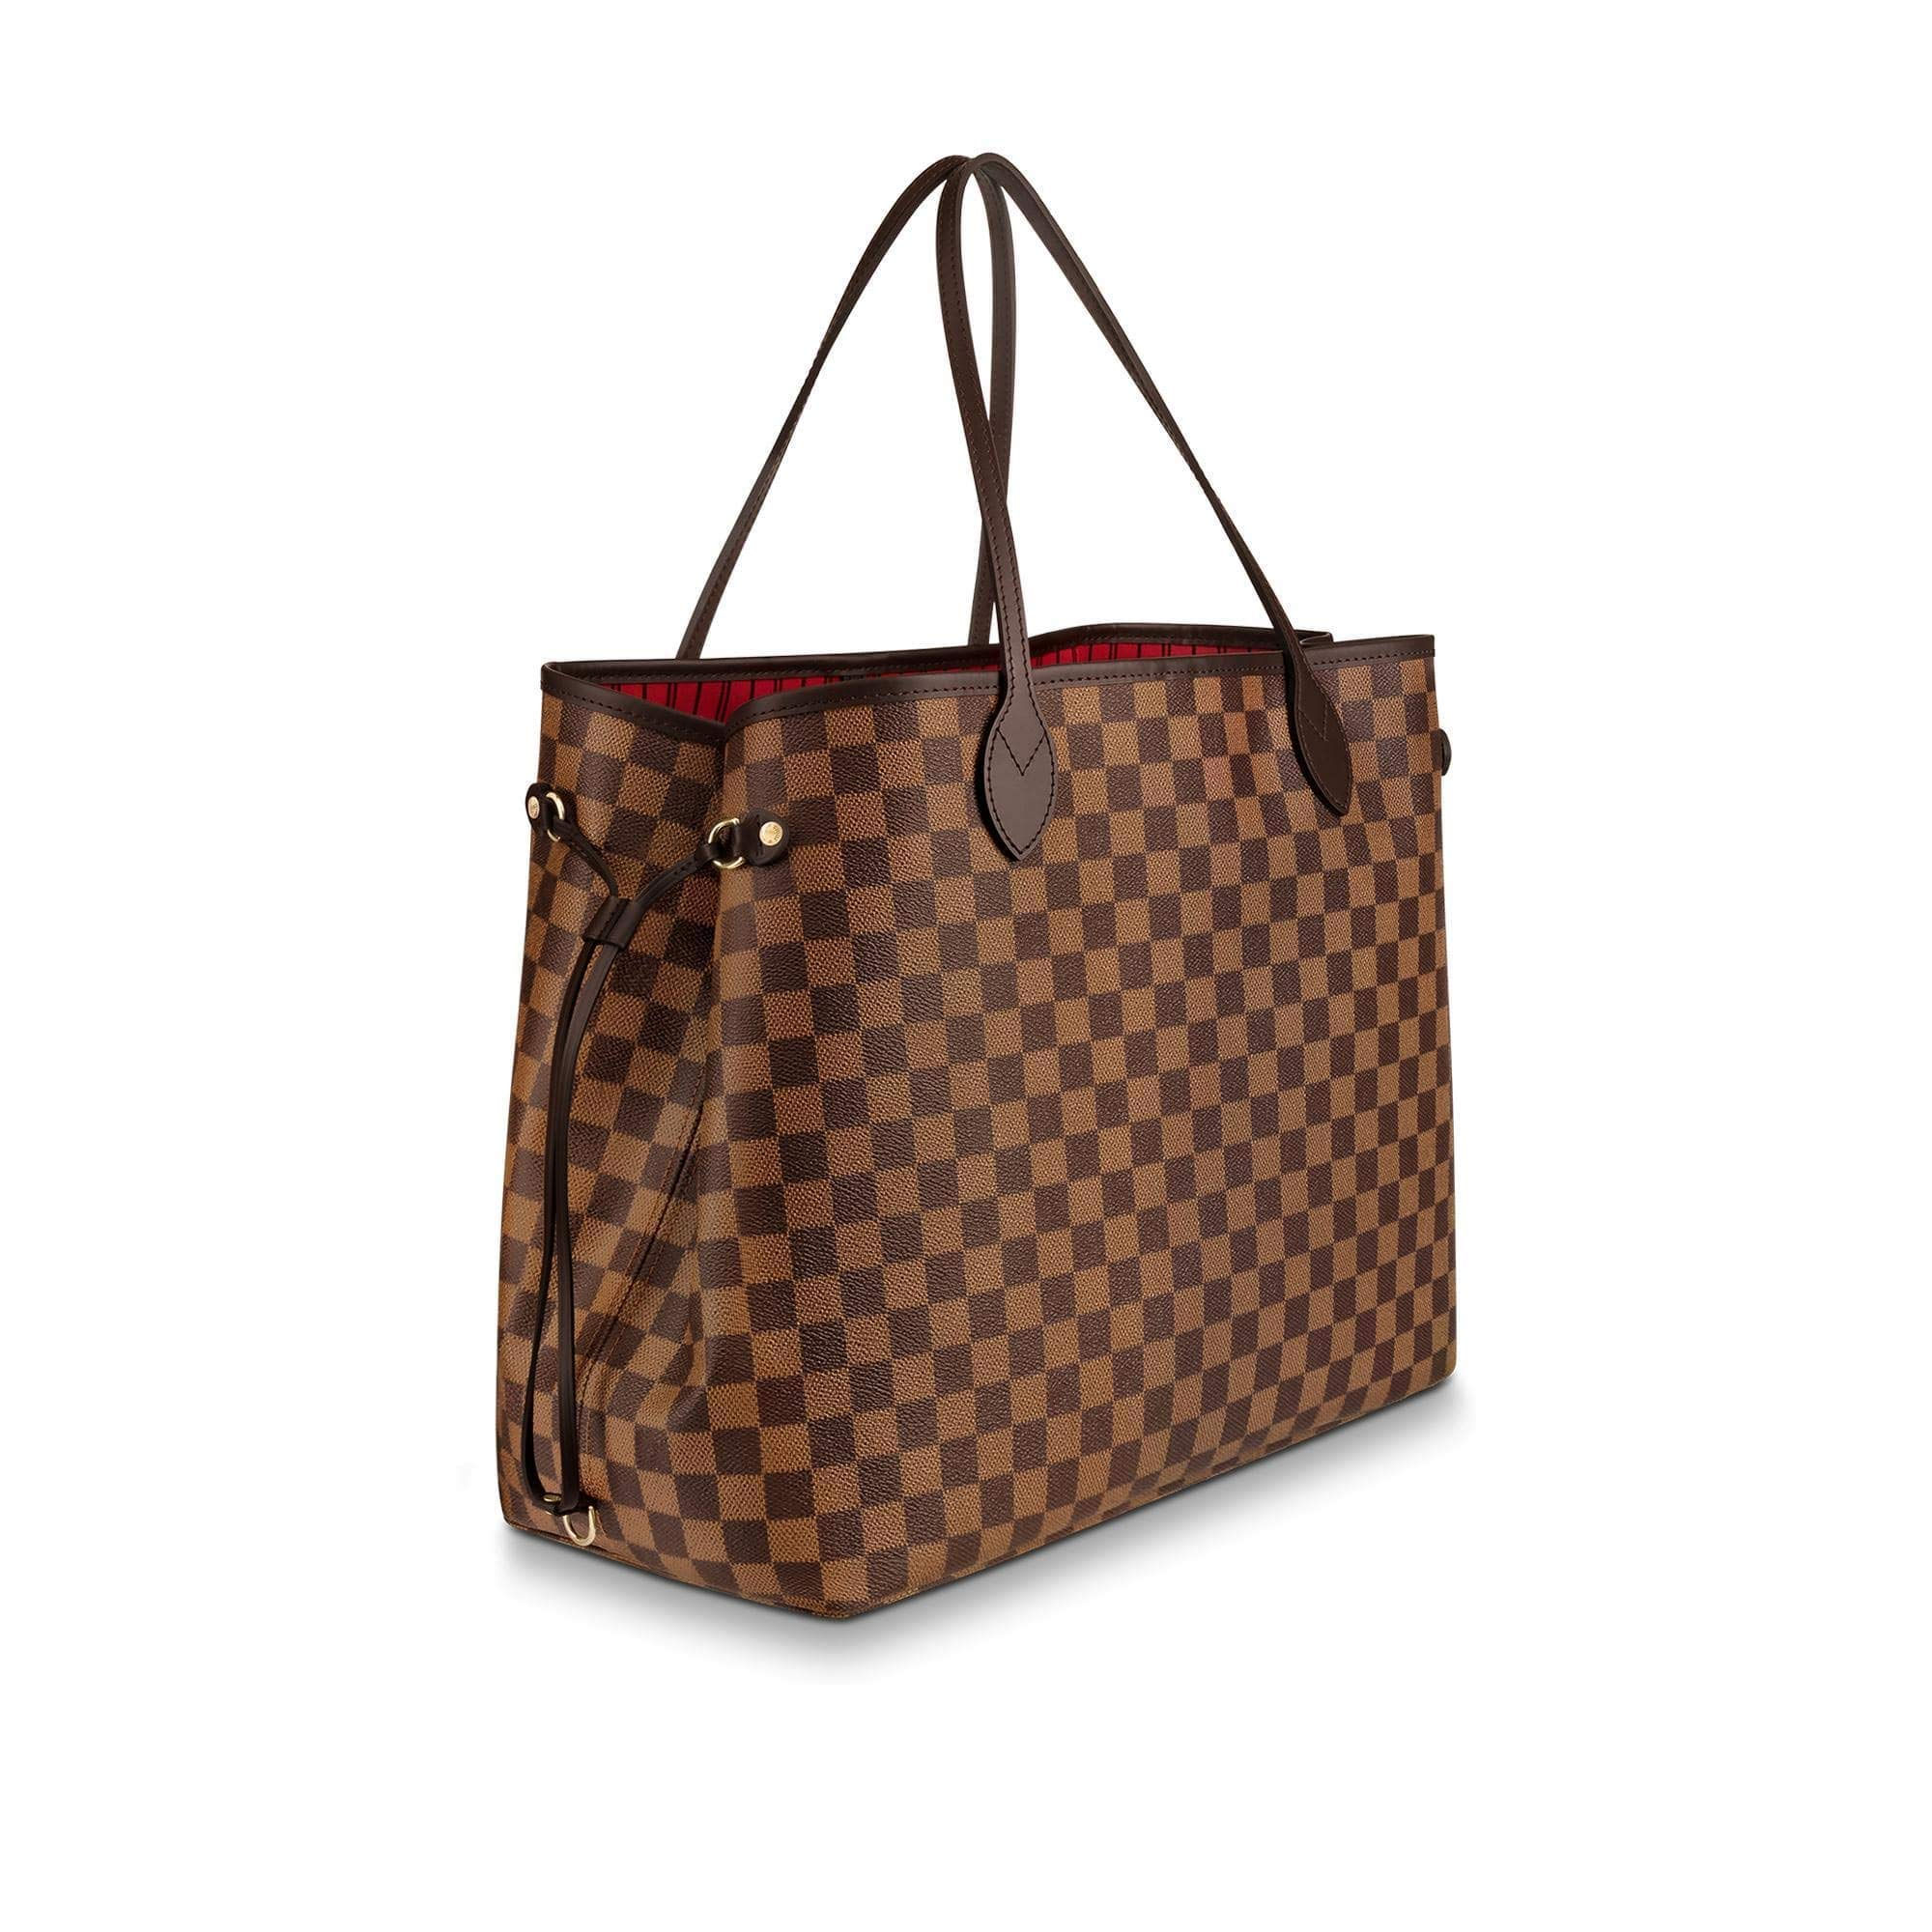 V Style Bags Women Handbag Tote MM Shoulder Bag Organizer made of Canvas Size 12.6 x 11.4 x 6.7 inches by Unknown Binding (Image #3)